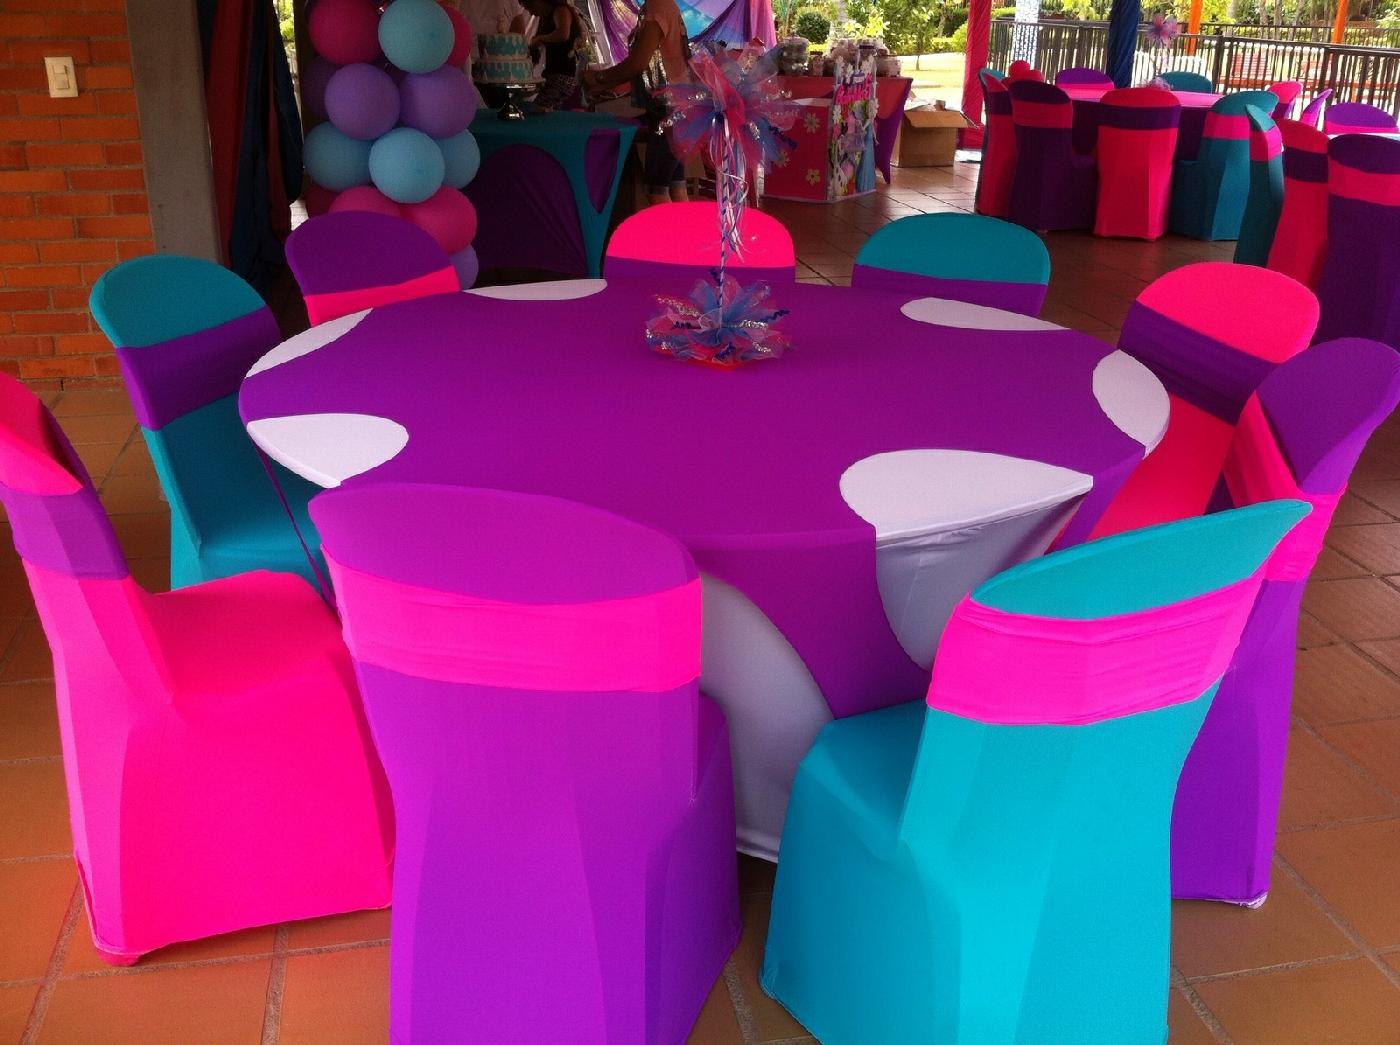 Eventos los chamos sillas para eventos en cali carrera for Sillas para quinceaneras